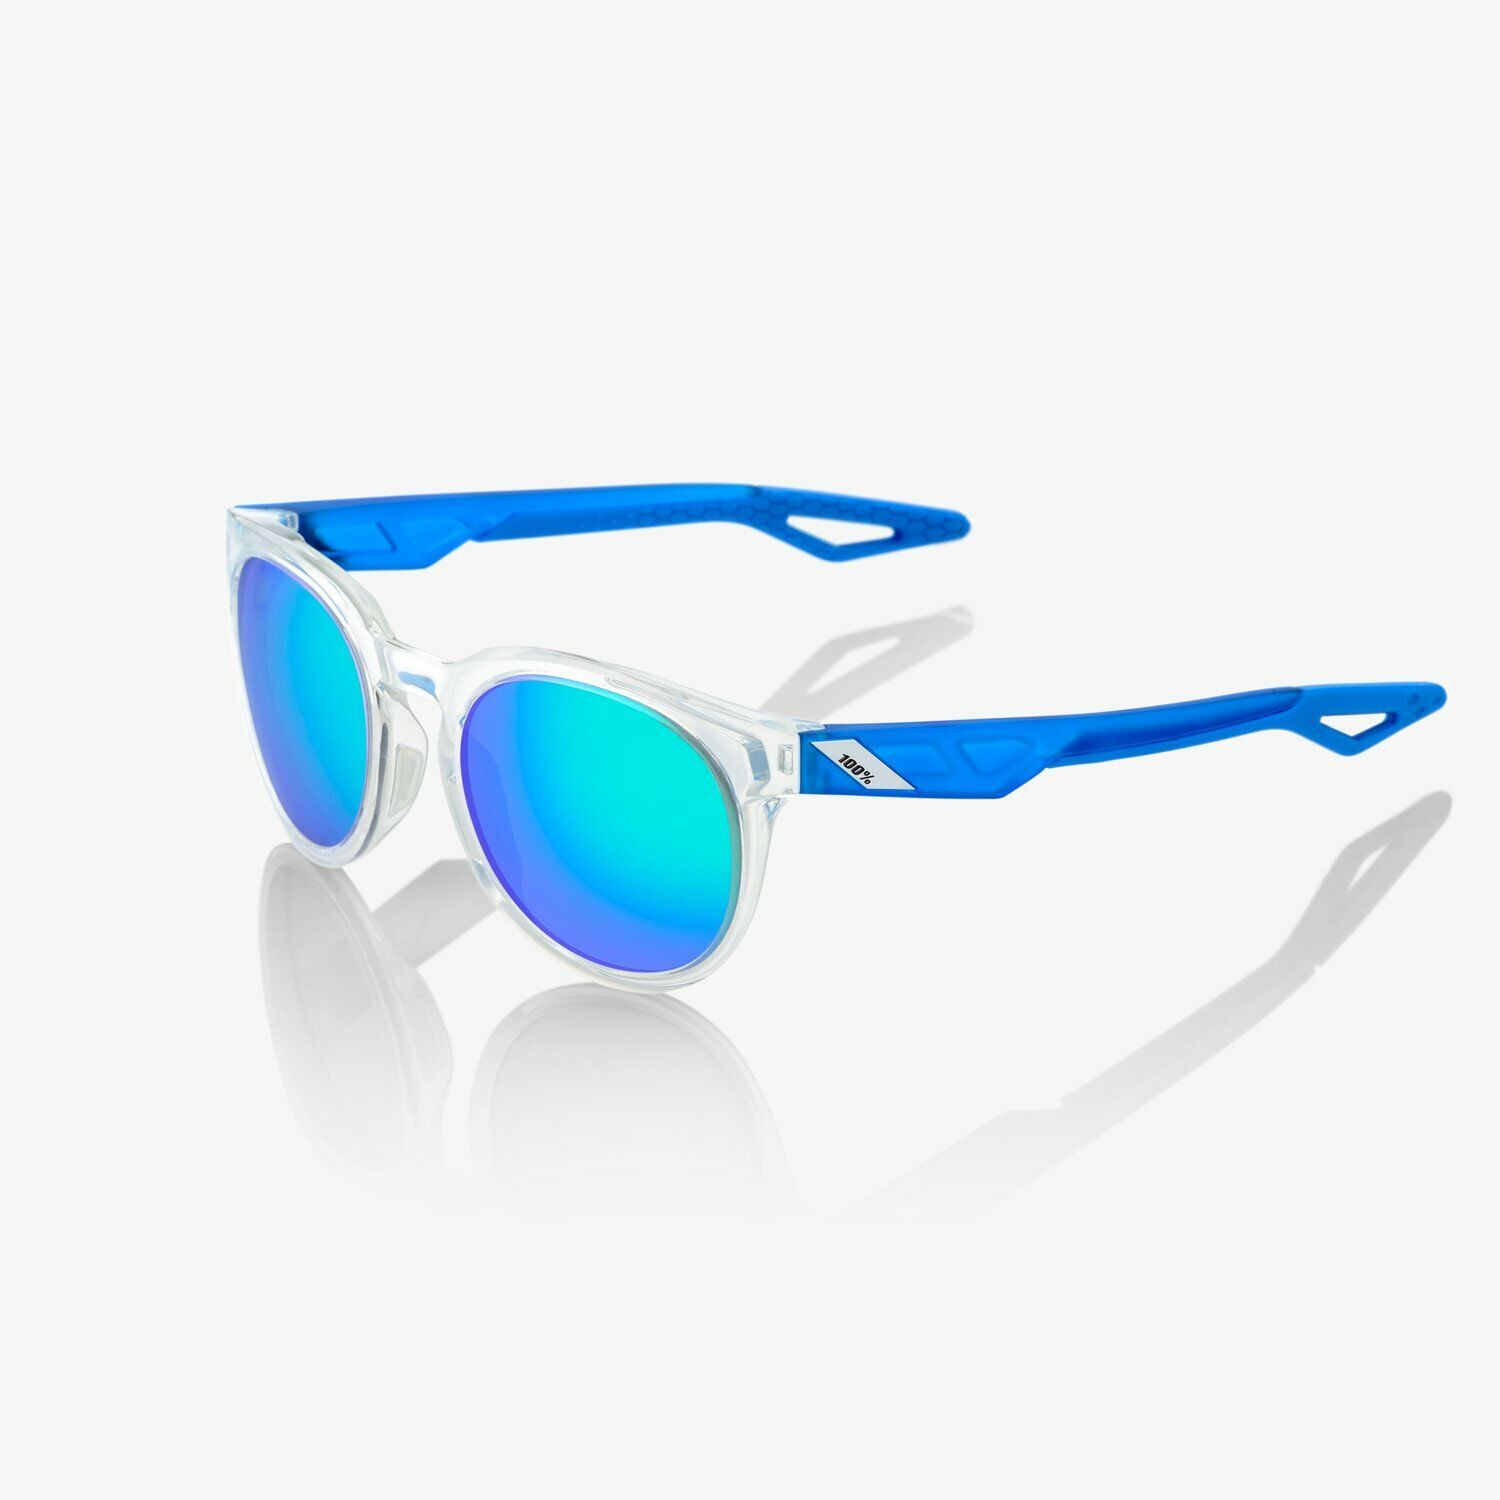 New 100%  Campo Sunglasses Polished Cyrstal Clear - Cycling Surfing MX Fishing  shop makes buying and selling